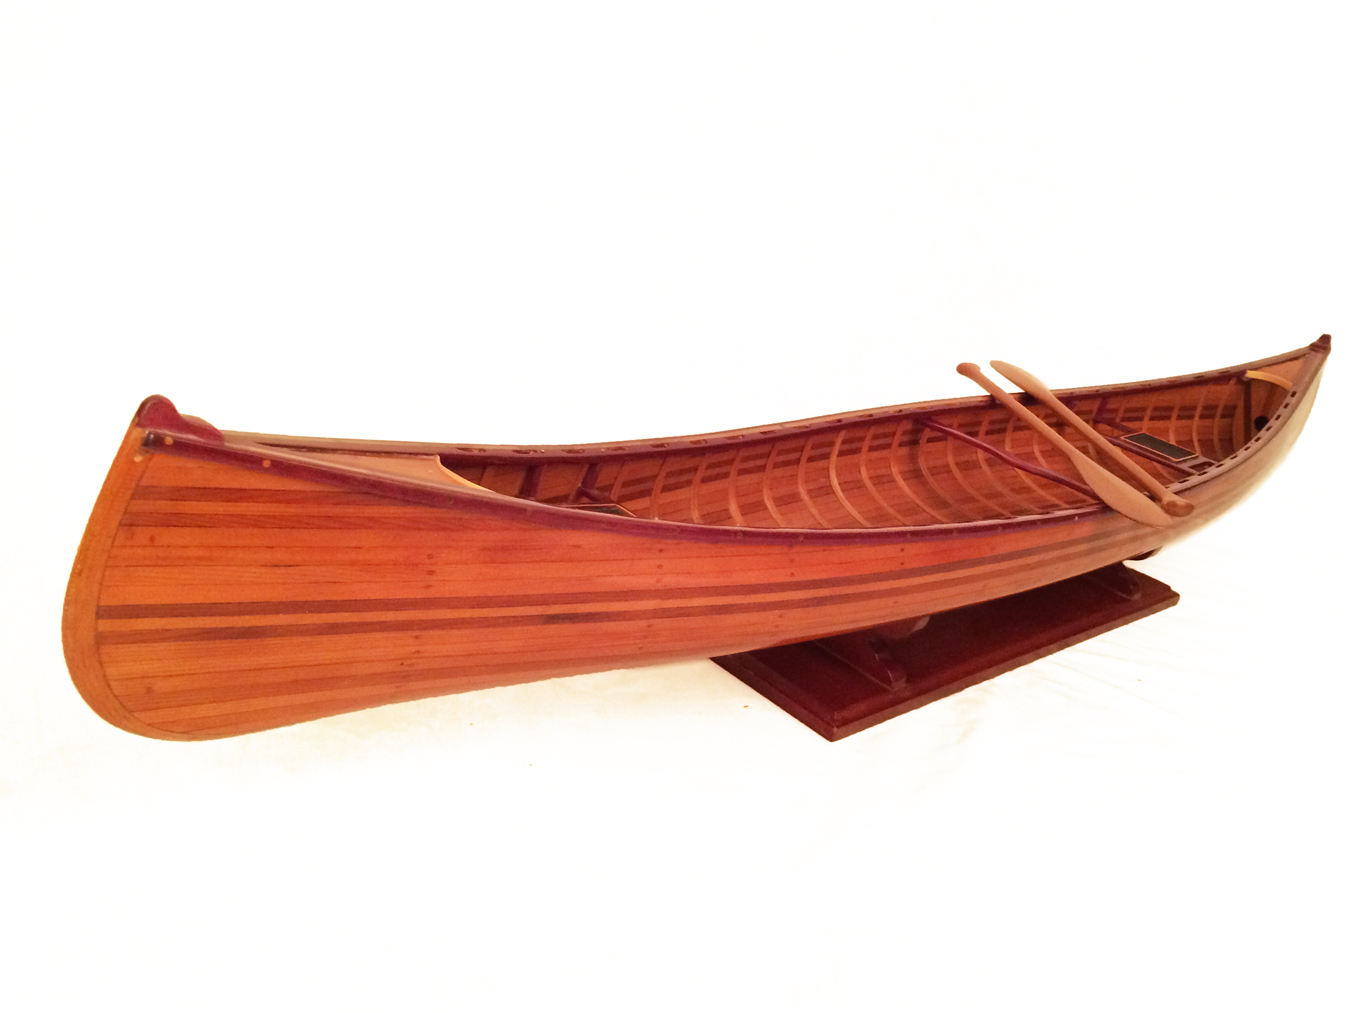 test miniature cedar wood canoe 09